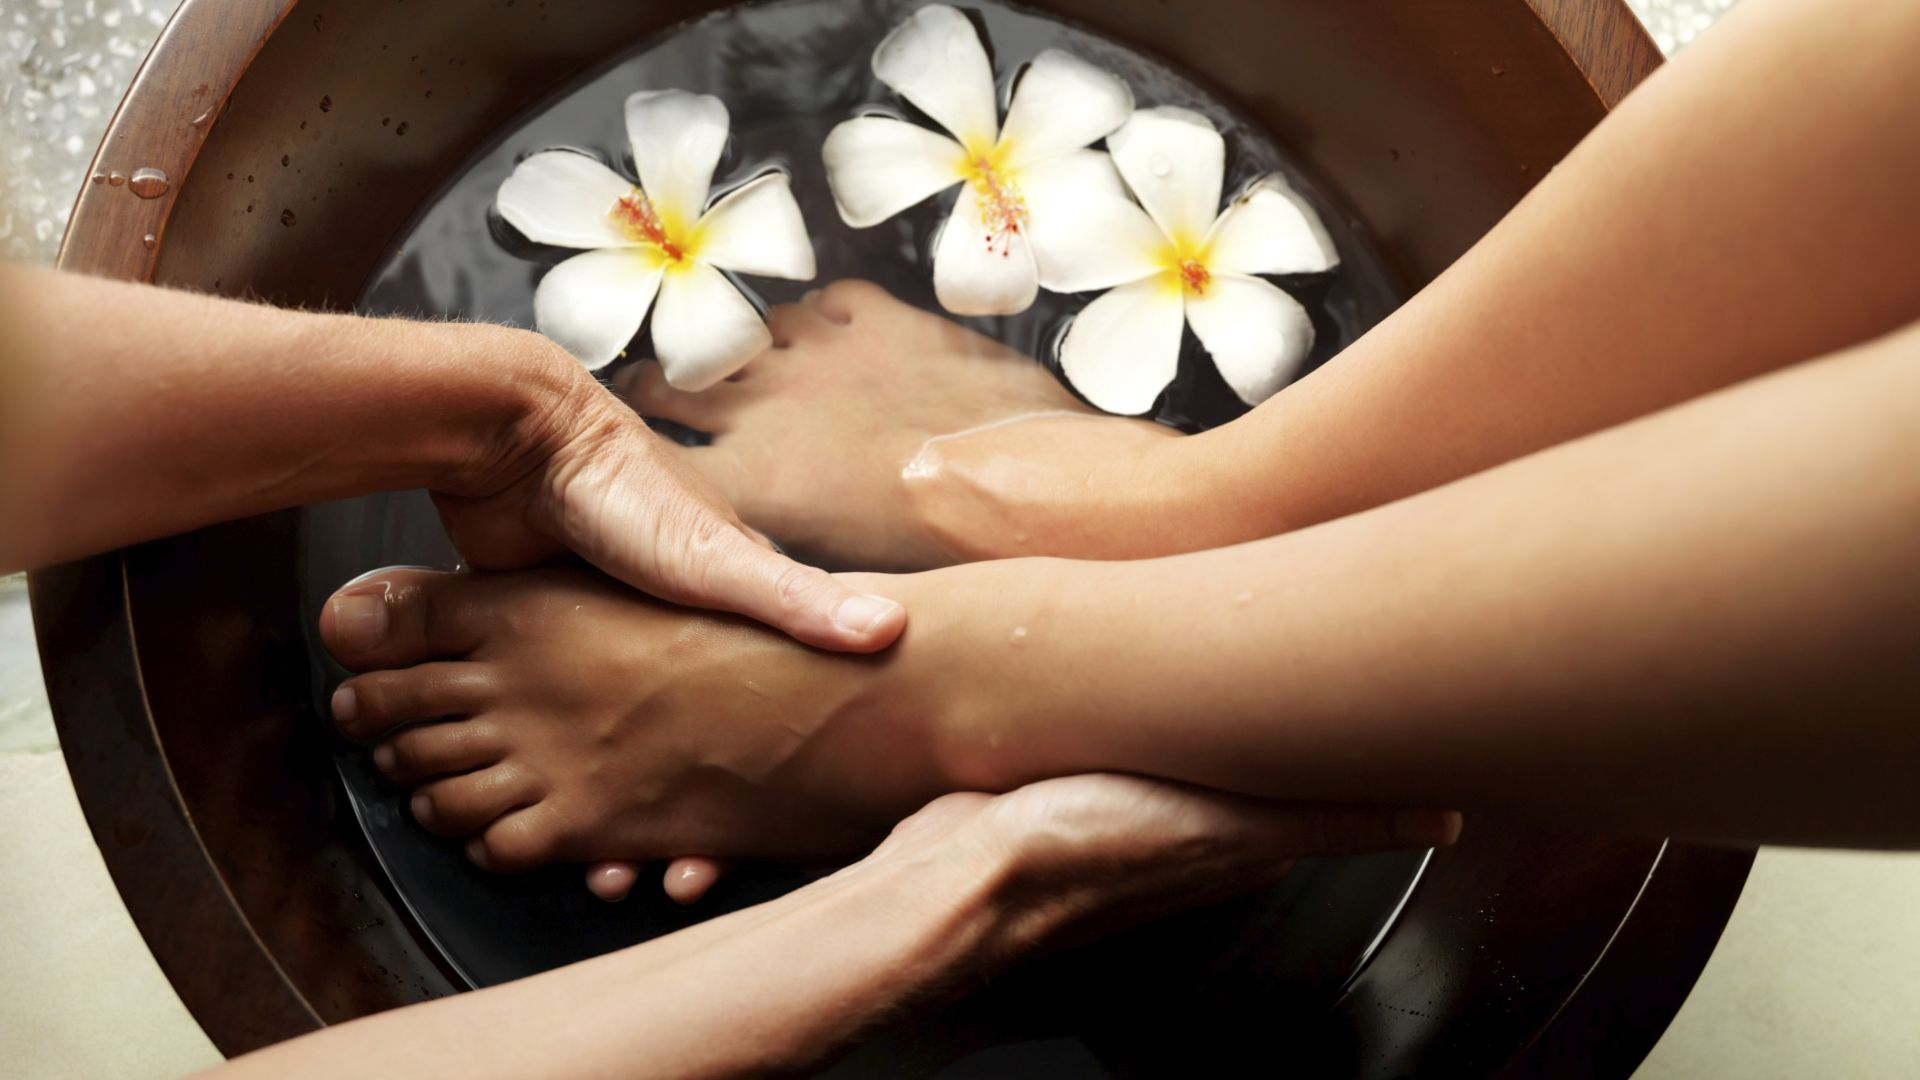 Foot treatment at spa - with flowers and feet immersed in bowl of water.